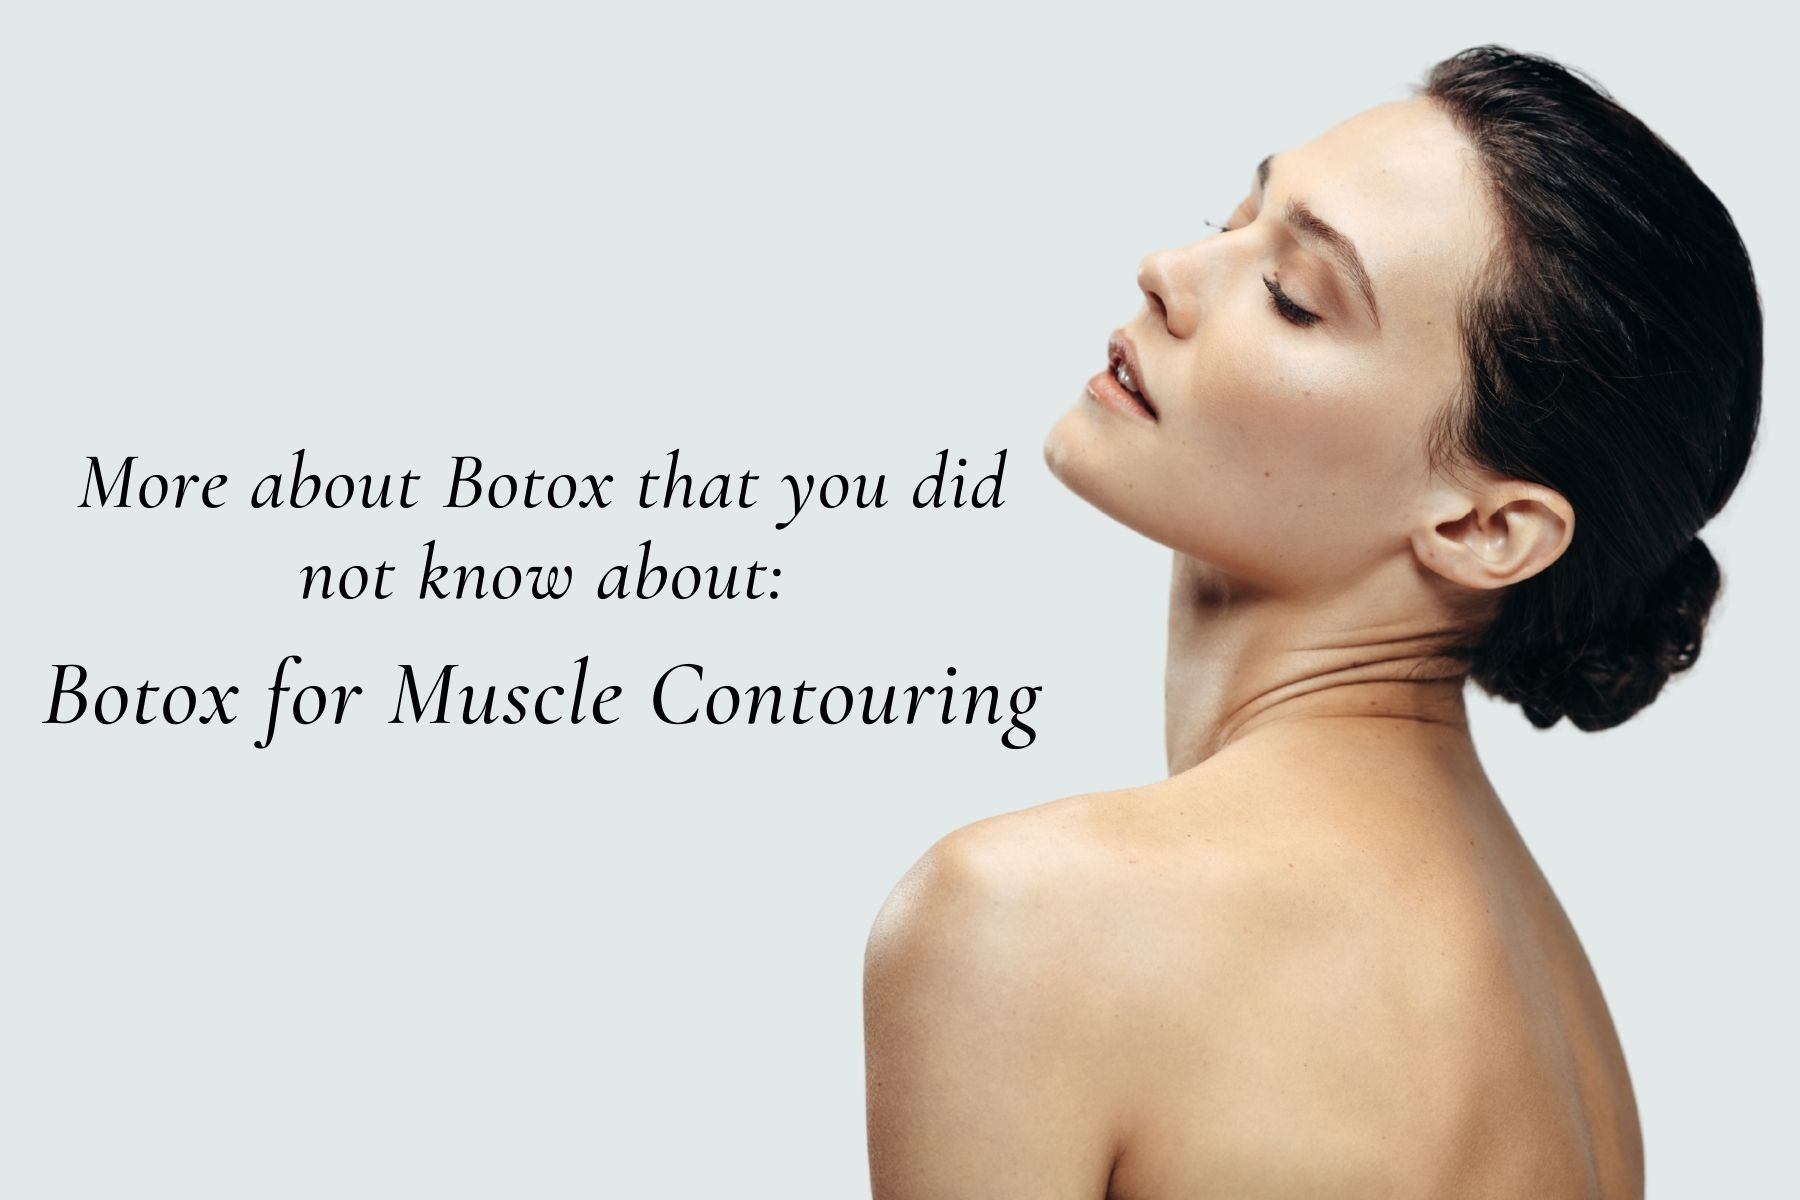 More About Botox that you did not know about: Botox For Muscle Contouring